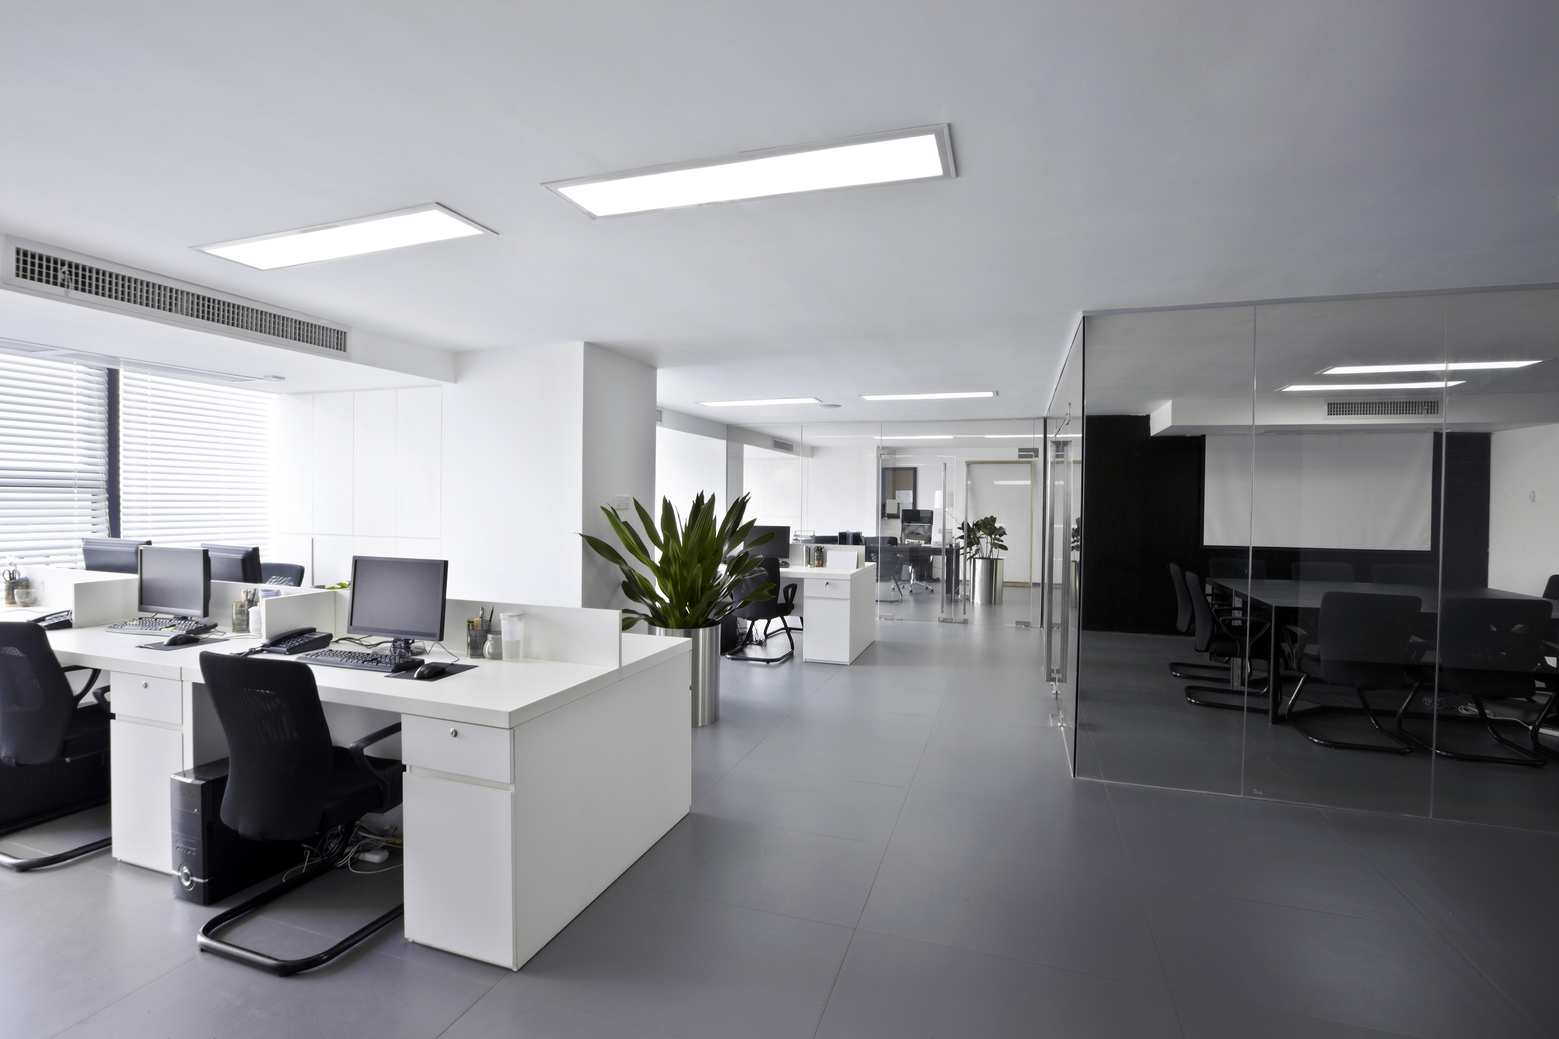 A Clean Environment: The Advantages of Maintaining the Office